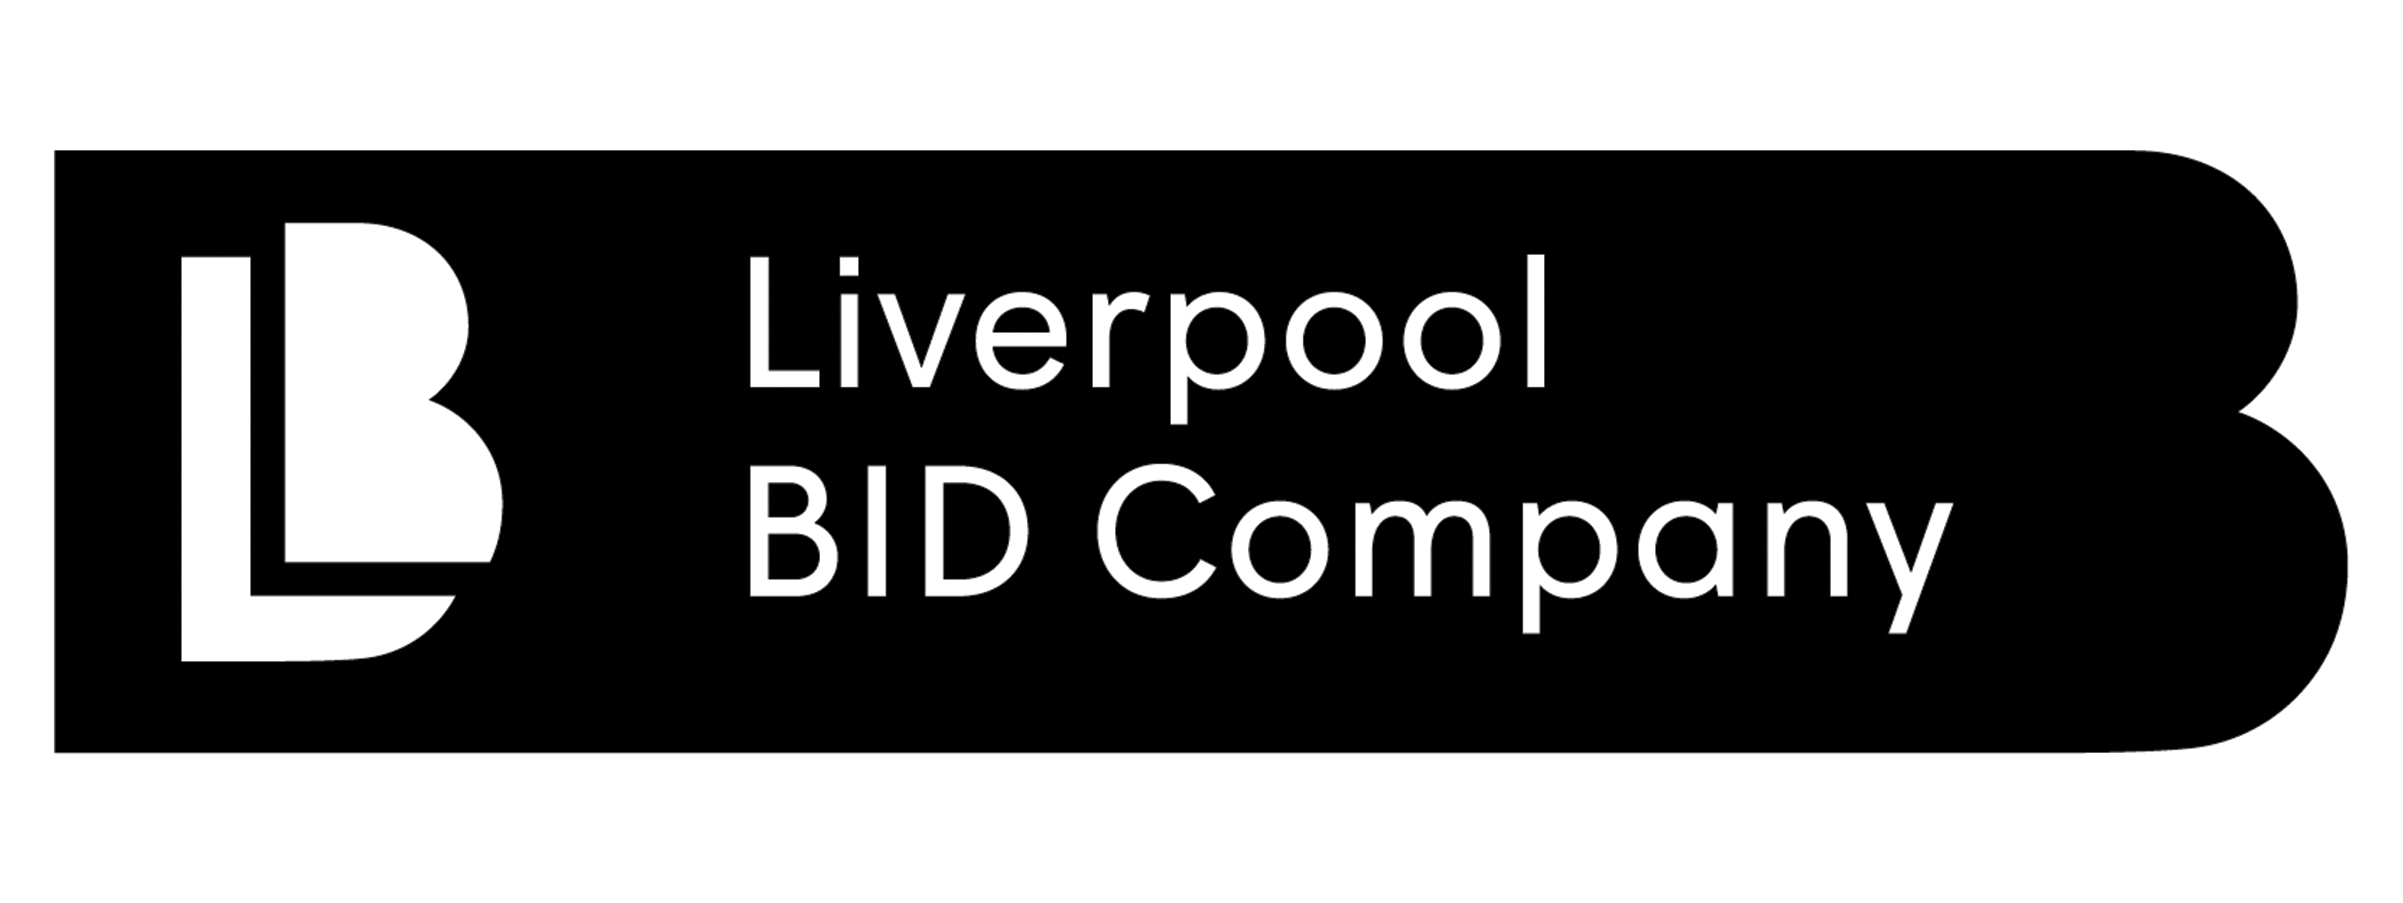 Liverpool BID Company logo - Art in Motion